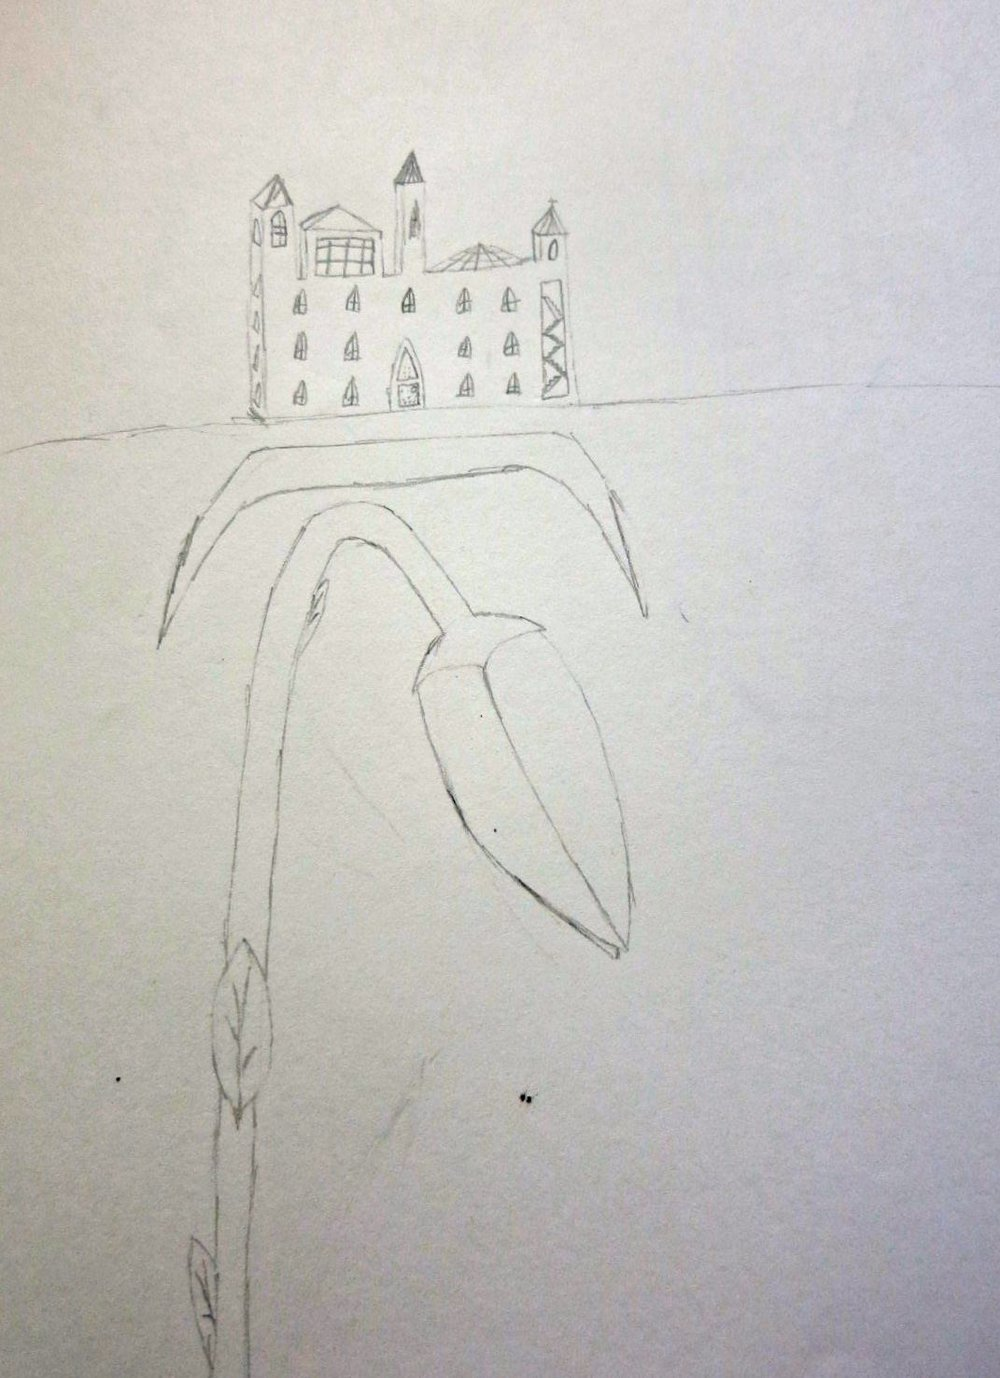 The great grey school is looming above us. Illustration by Oliver Knight, Year 8, Sompting Abbotts Preparatory School